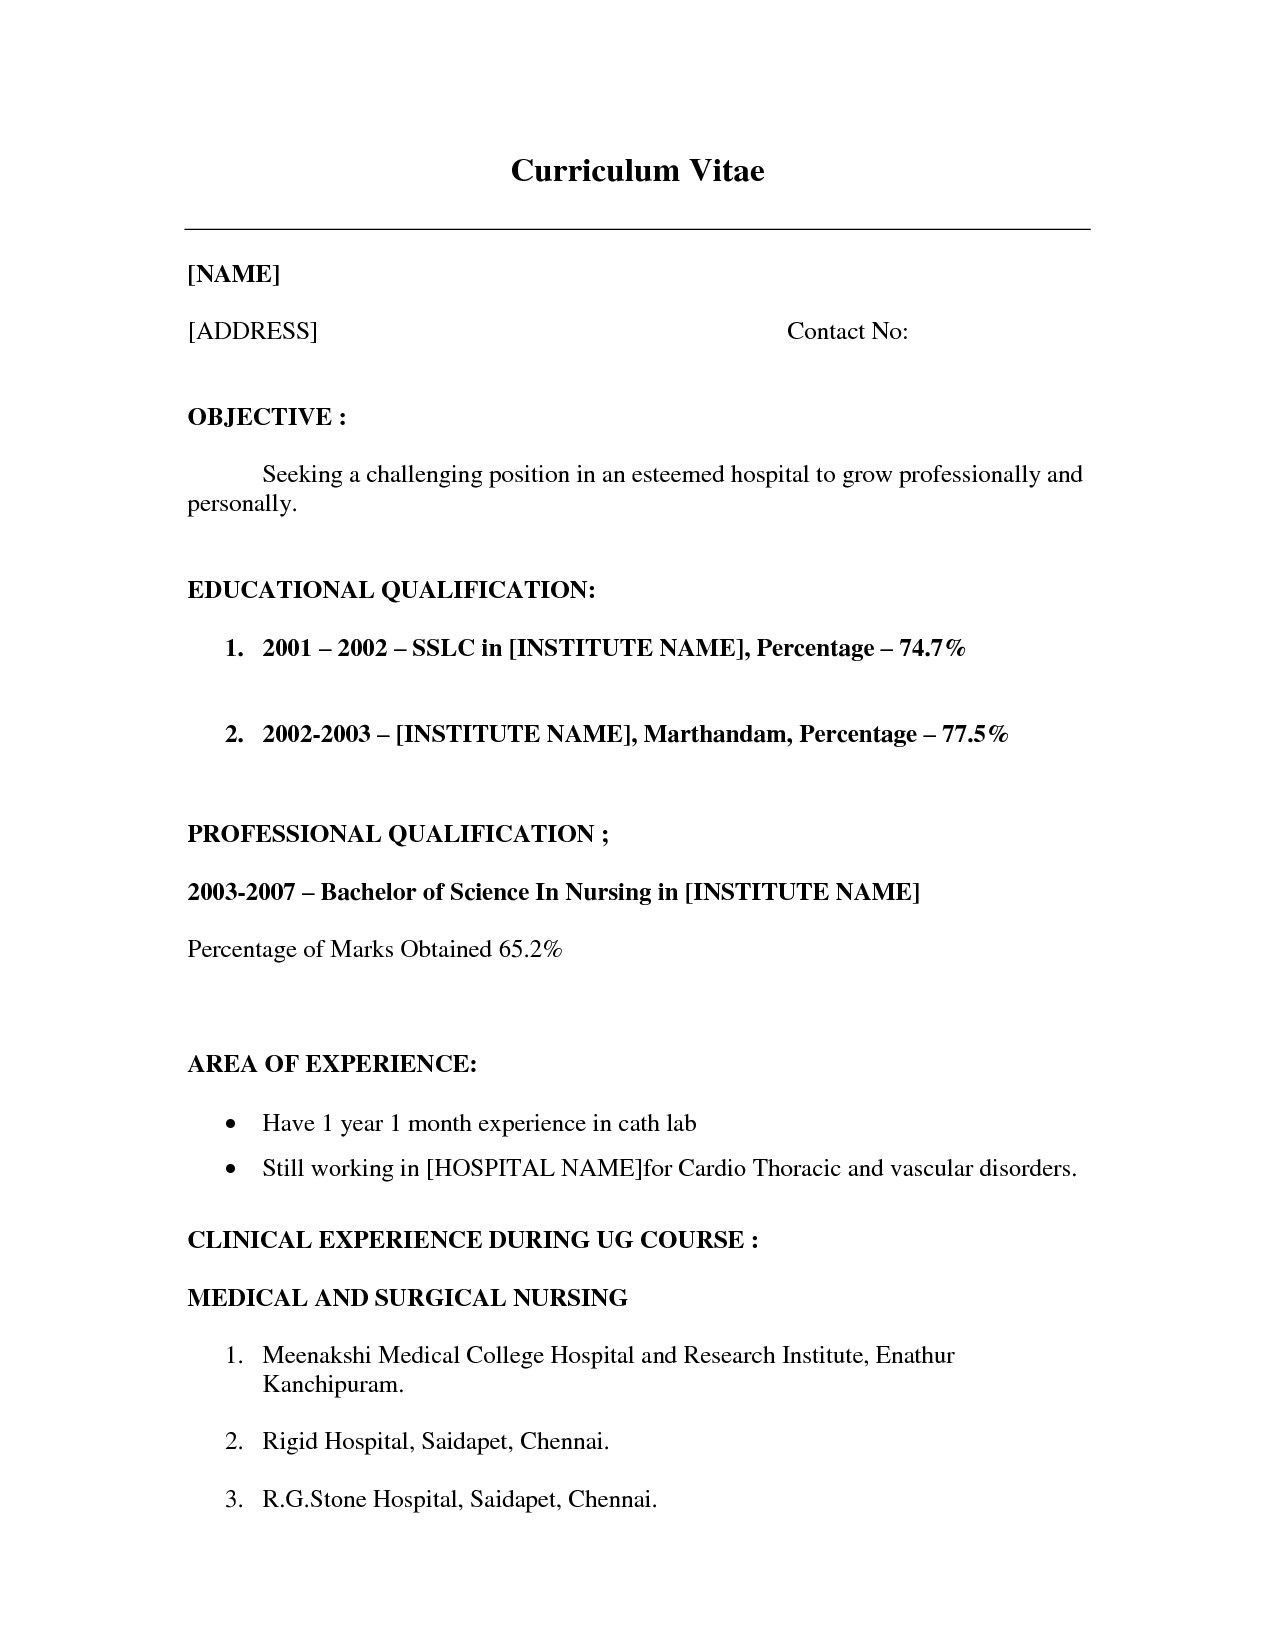 resume examples little work experience templates in job samples to make for best handyman Resume Resume For Little Work Experience